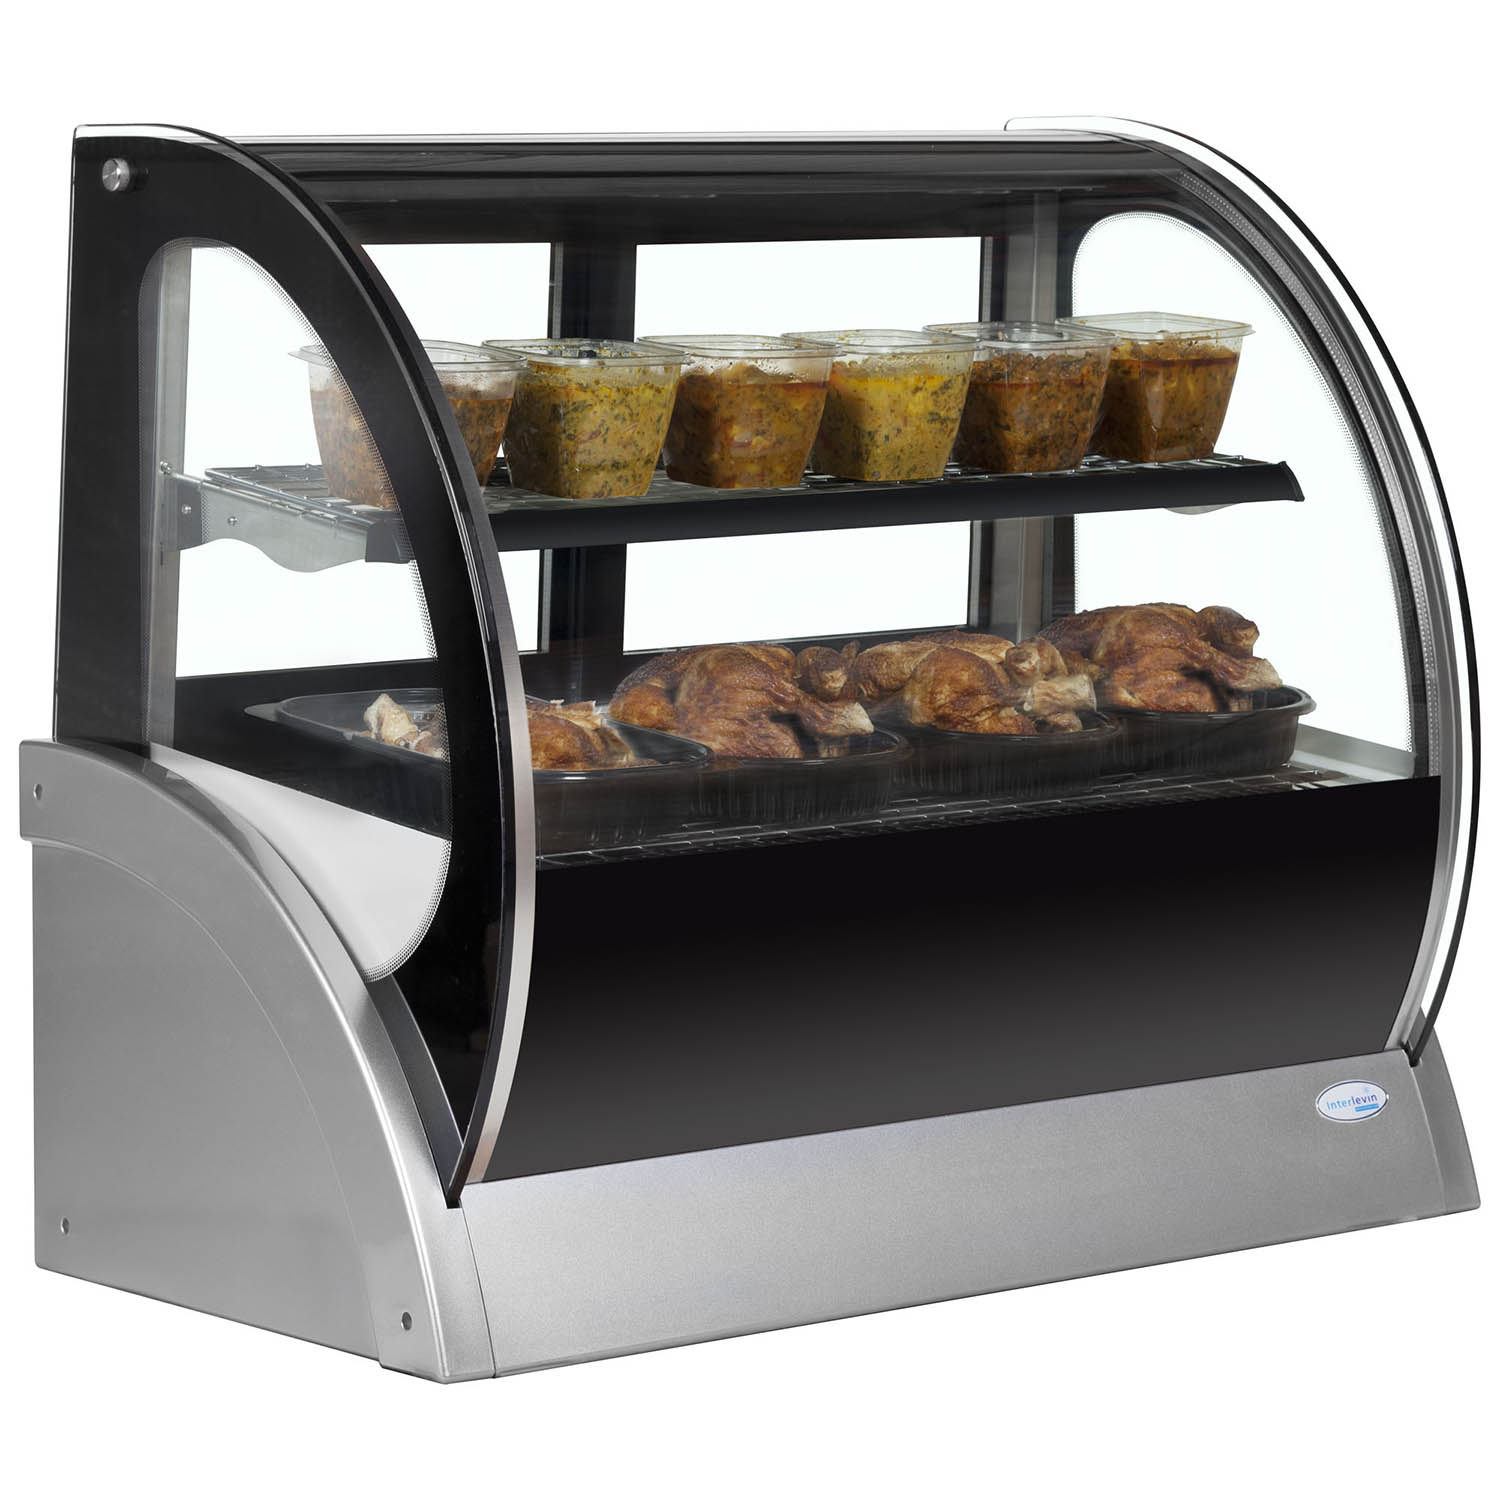 Interlevin H-S530A Counter Top Display